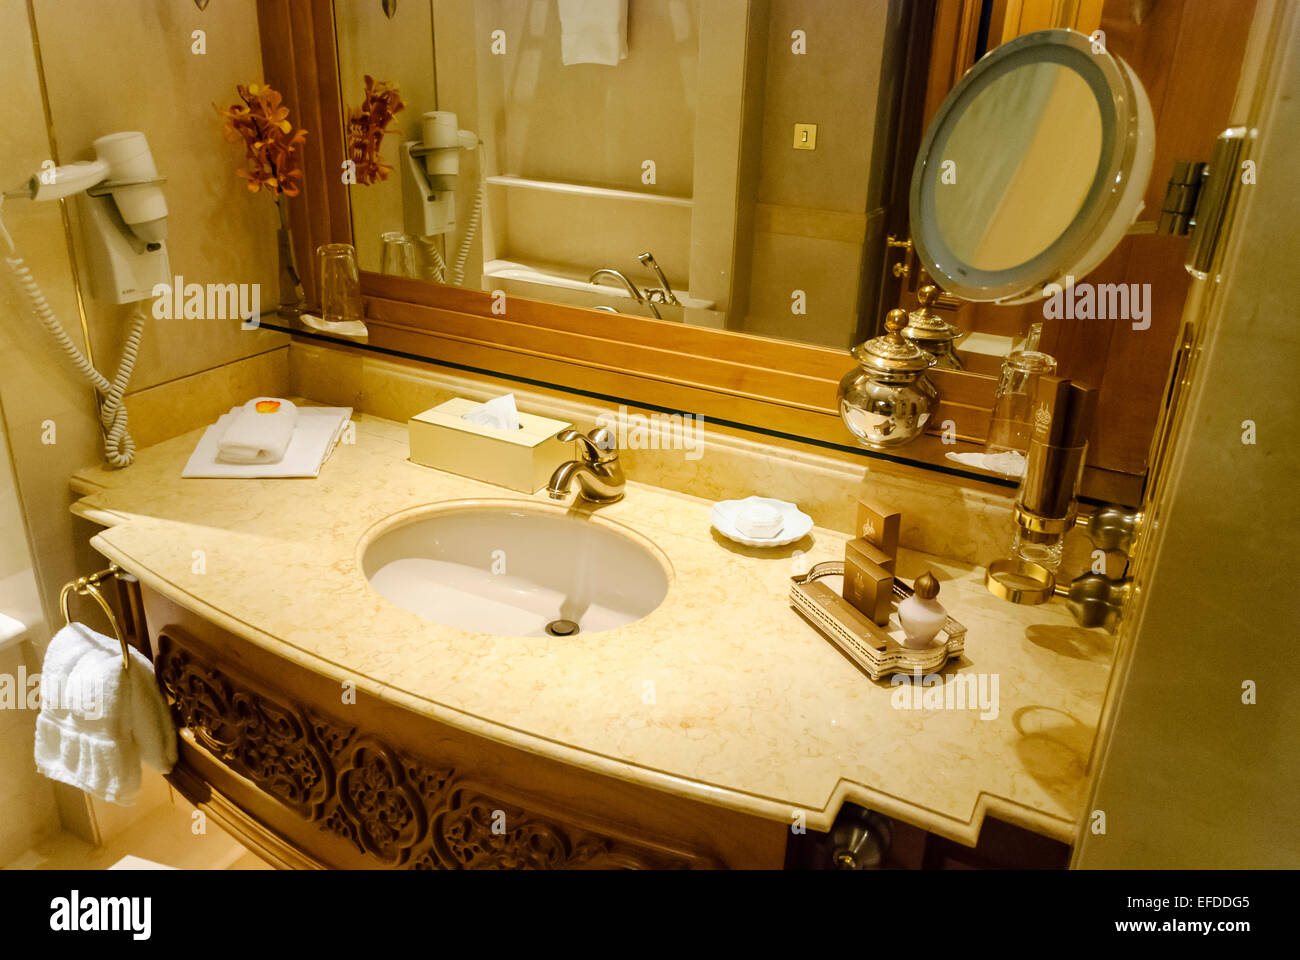 Gold Plated Bathroom Fixtures My Web Value